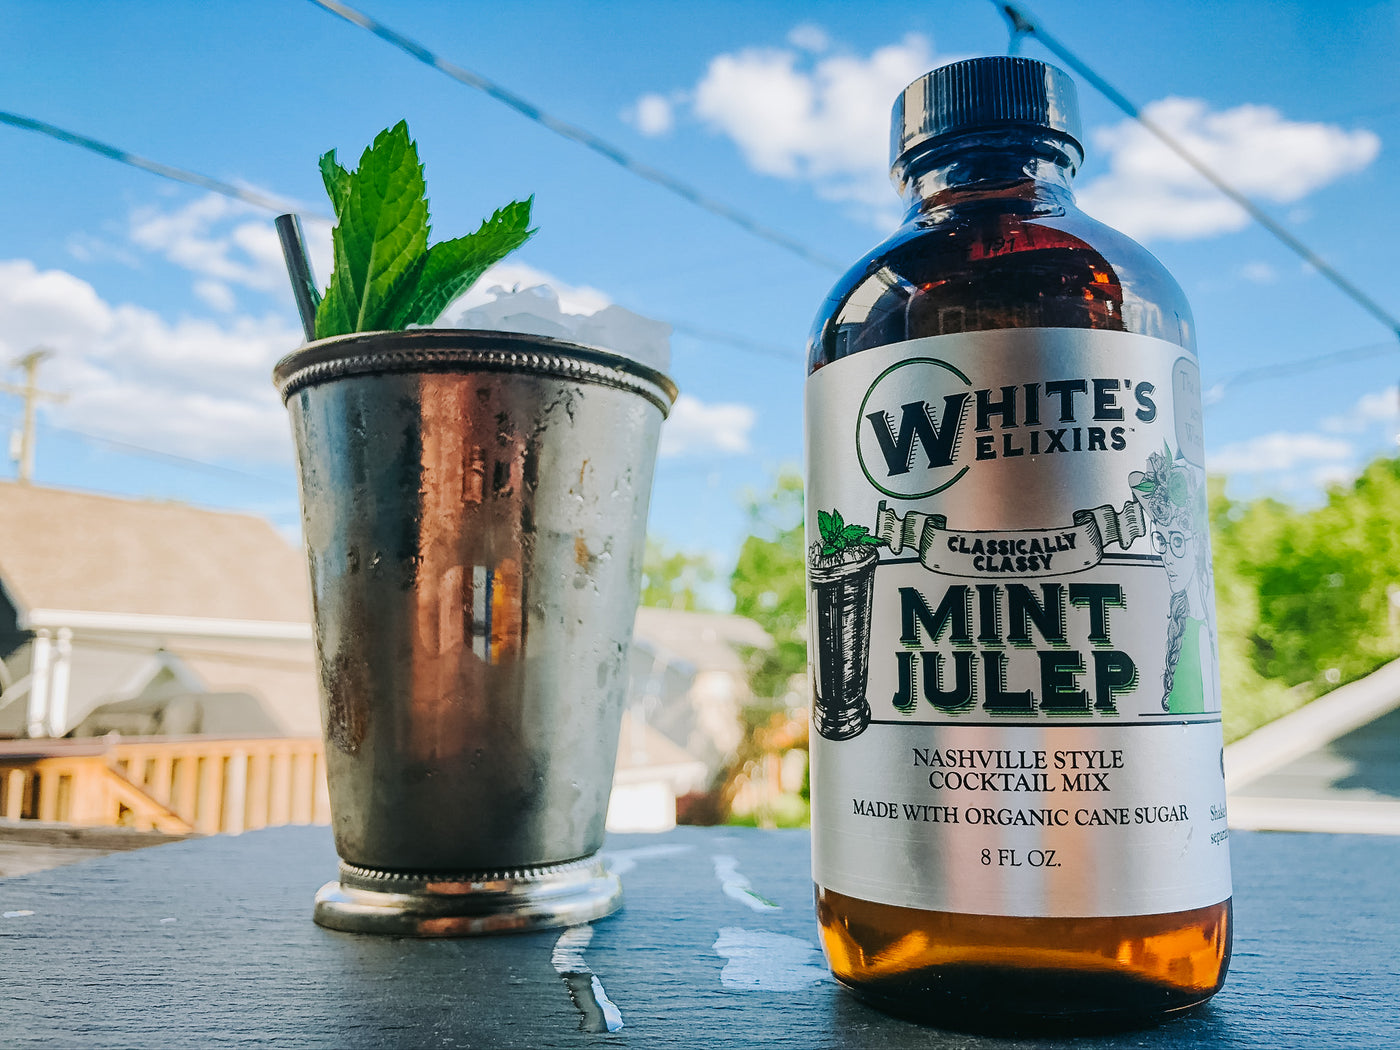 White's Elixirs Craft Cocktail Mint Julep Mix